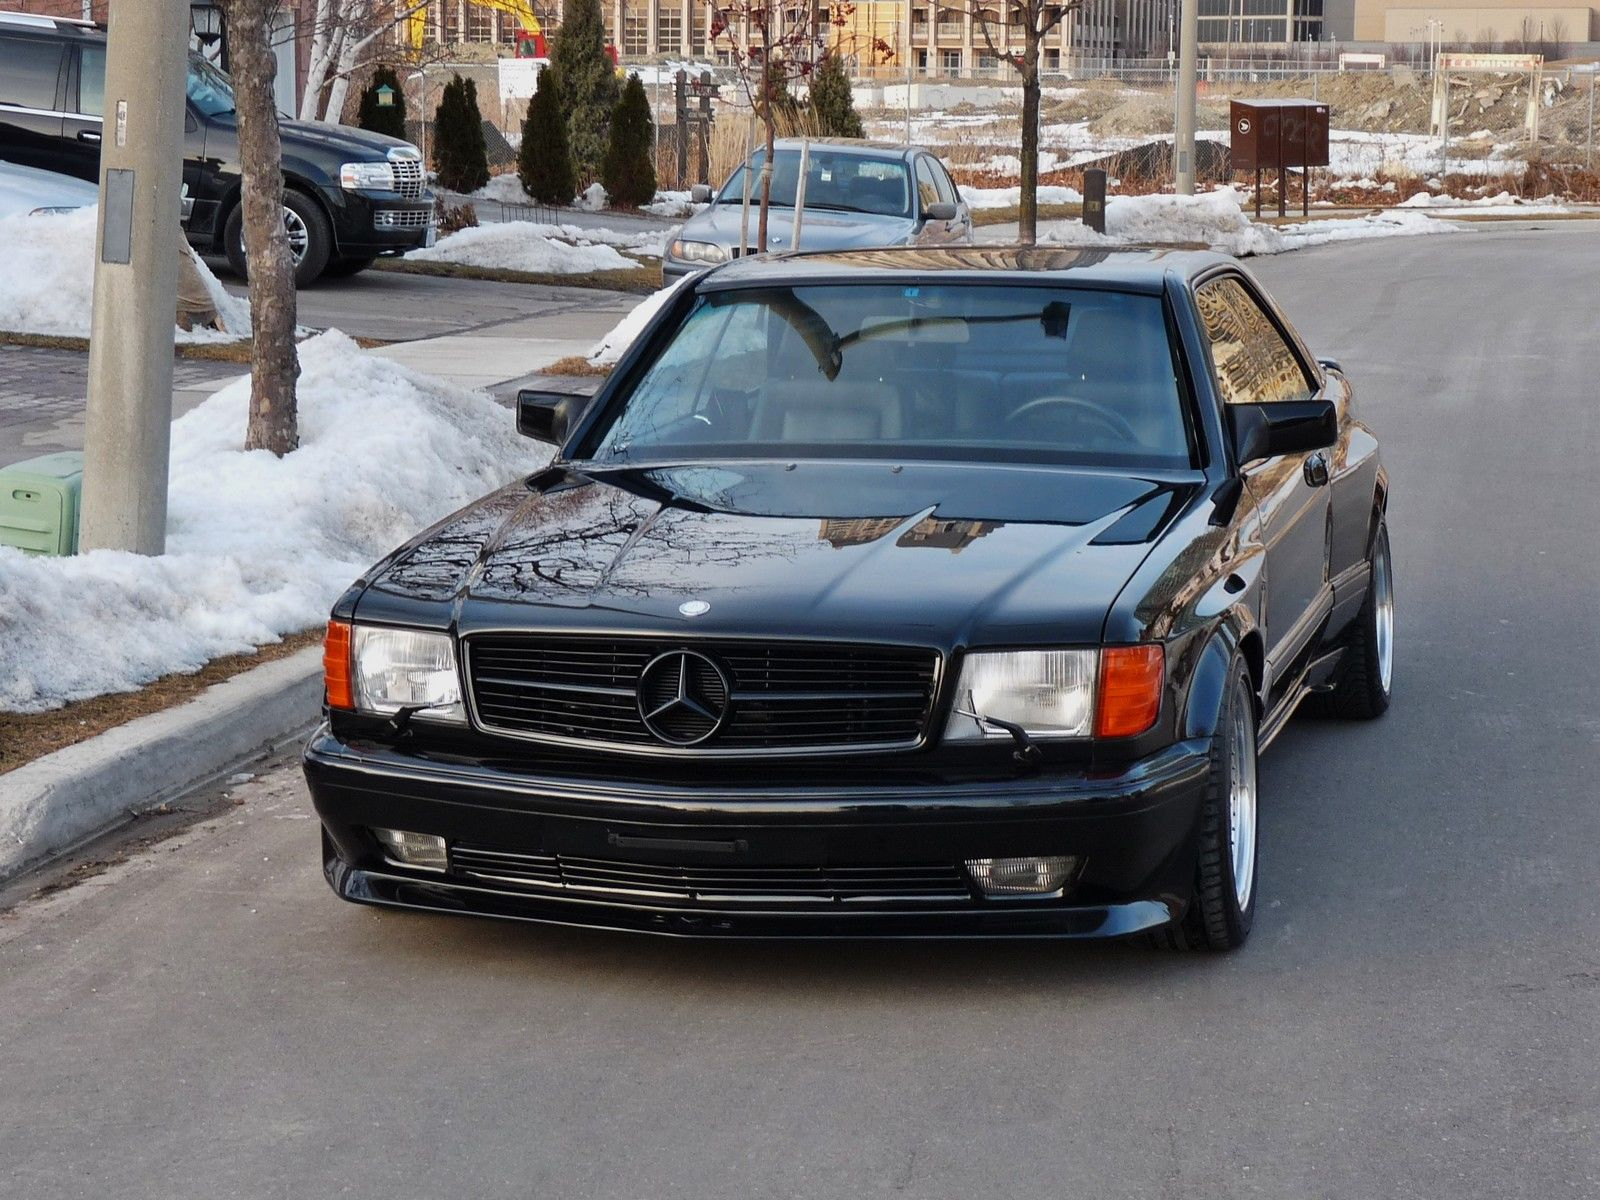 medium resolution of 1990 mercedes benz 560sec amg 6 0 widebody 1600 x 1200 mercedes benz mercedes transmission